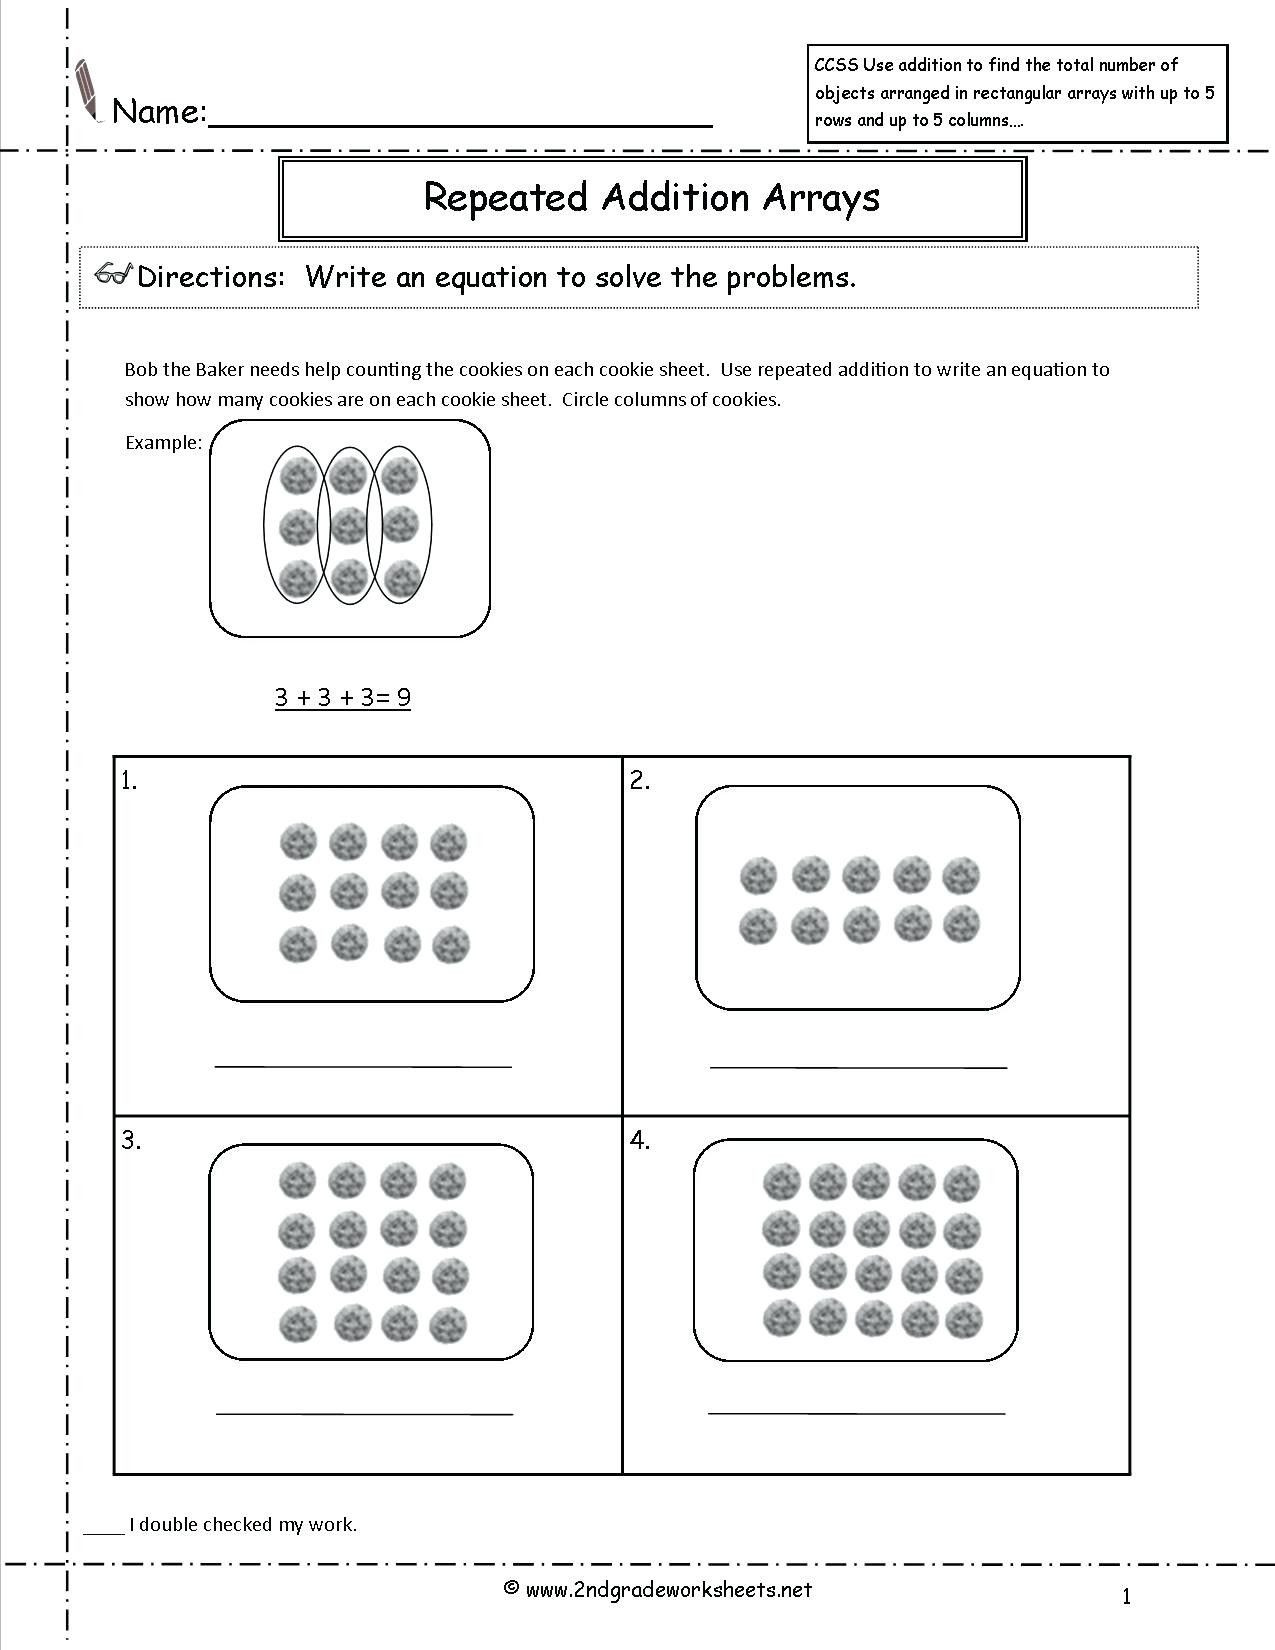 Arrays Worksheets Grade 2 4 Free Math Worksheets Second Grade 2 Addition Add 4 2 Digit